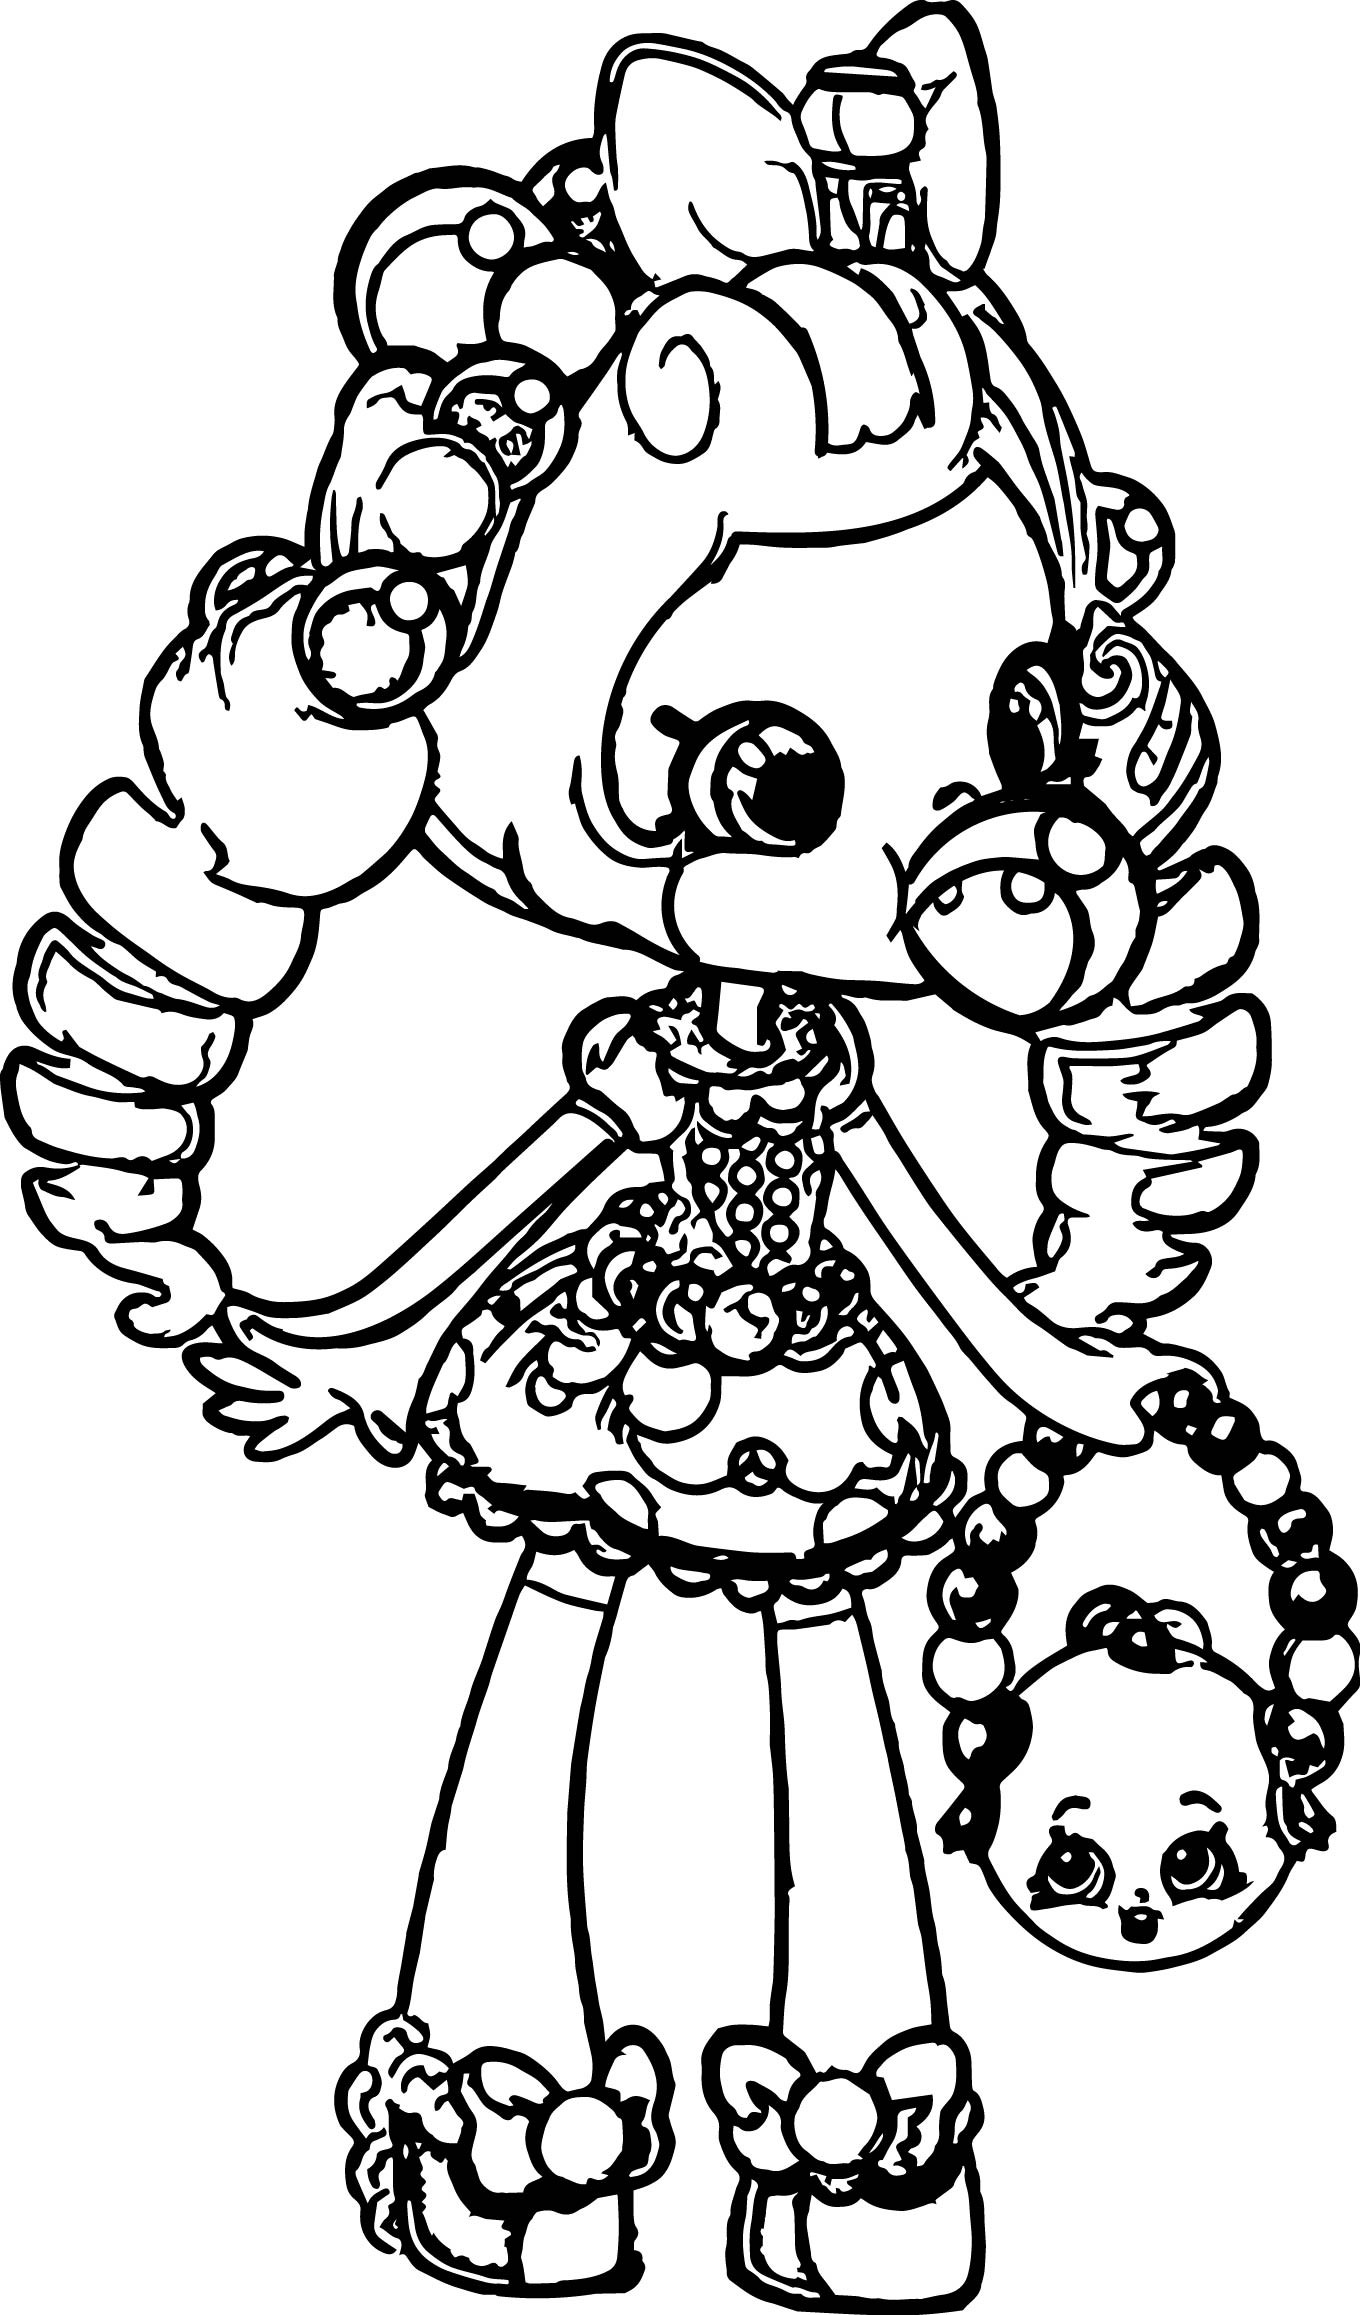 Coloring Sheets For Girls Shopkins  Shopkins Balloon Girl Coloring Page